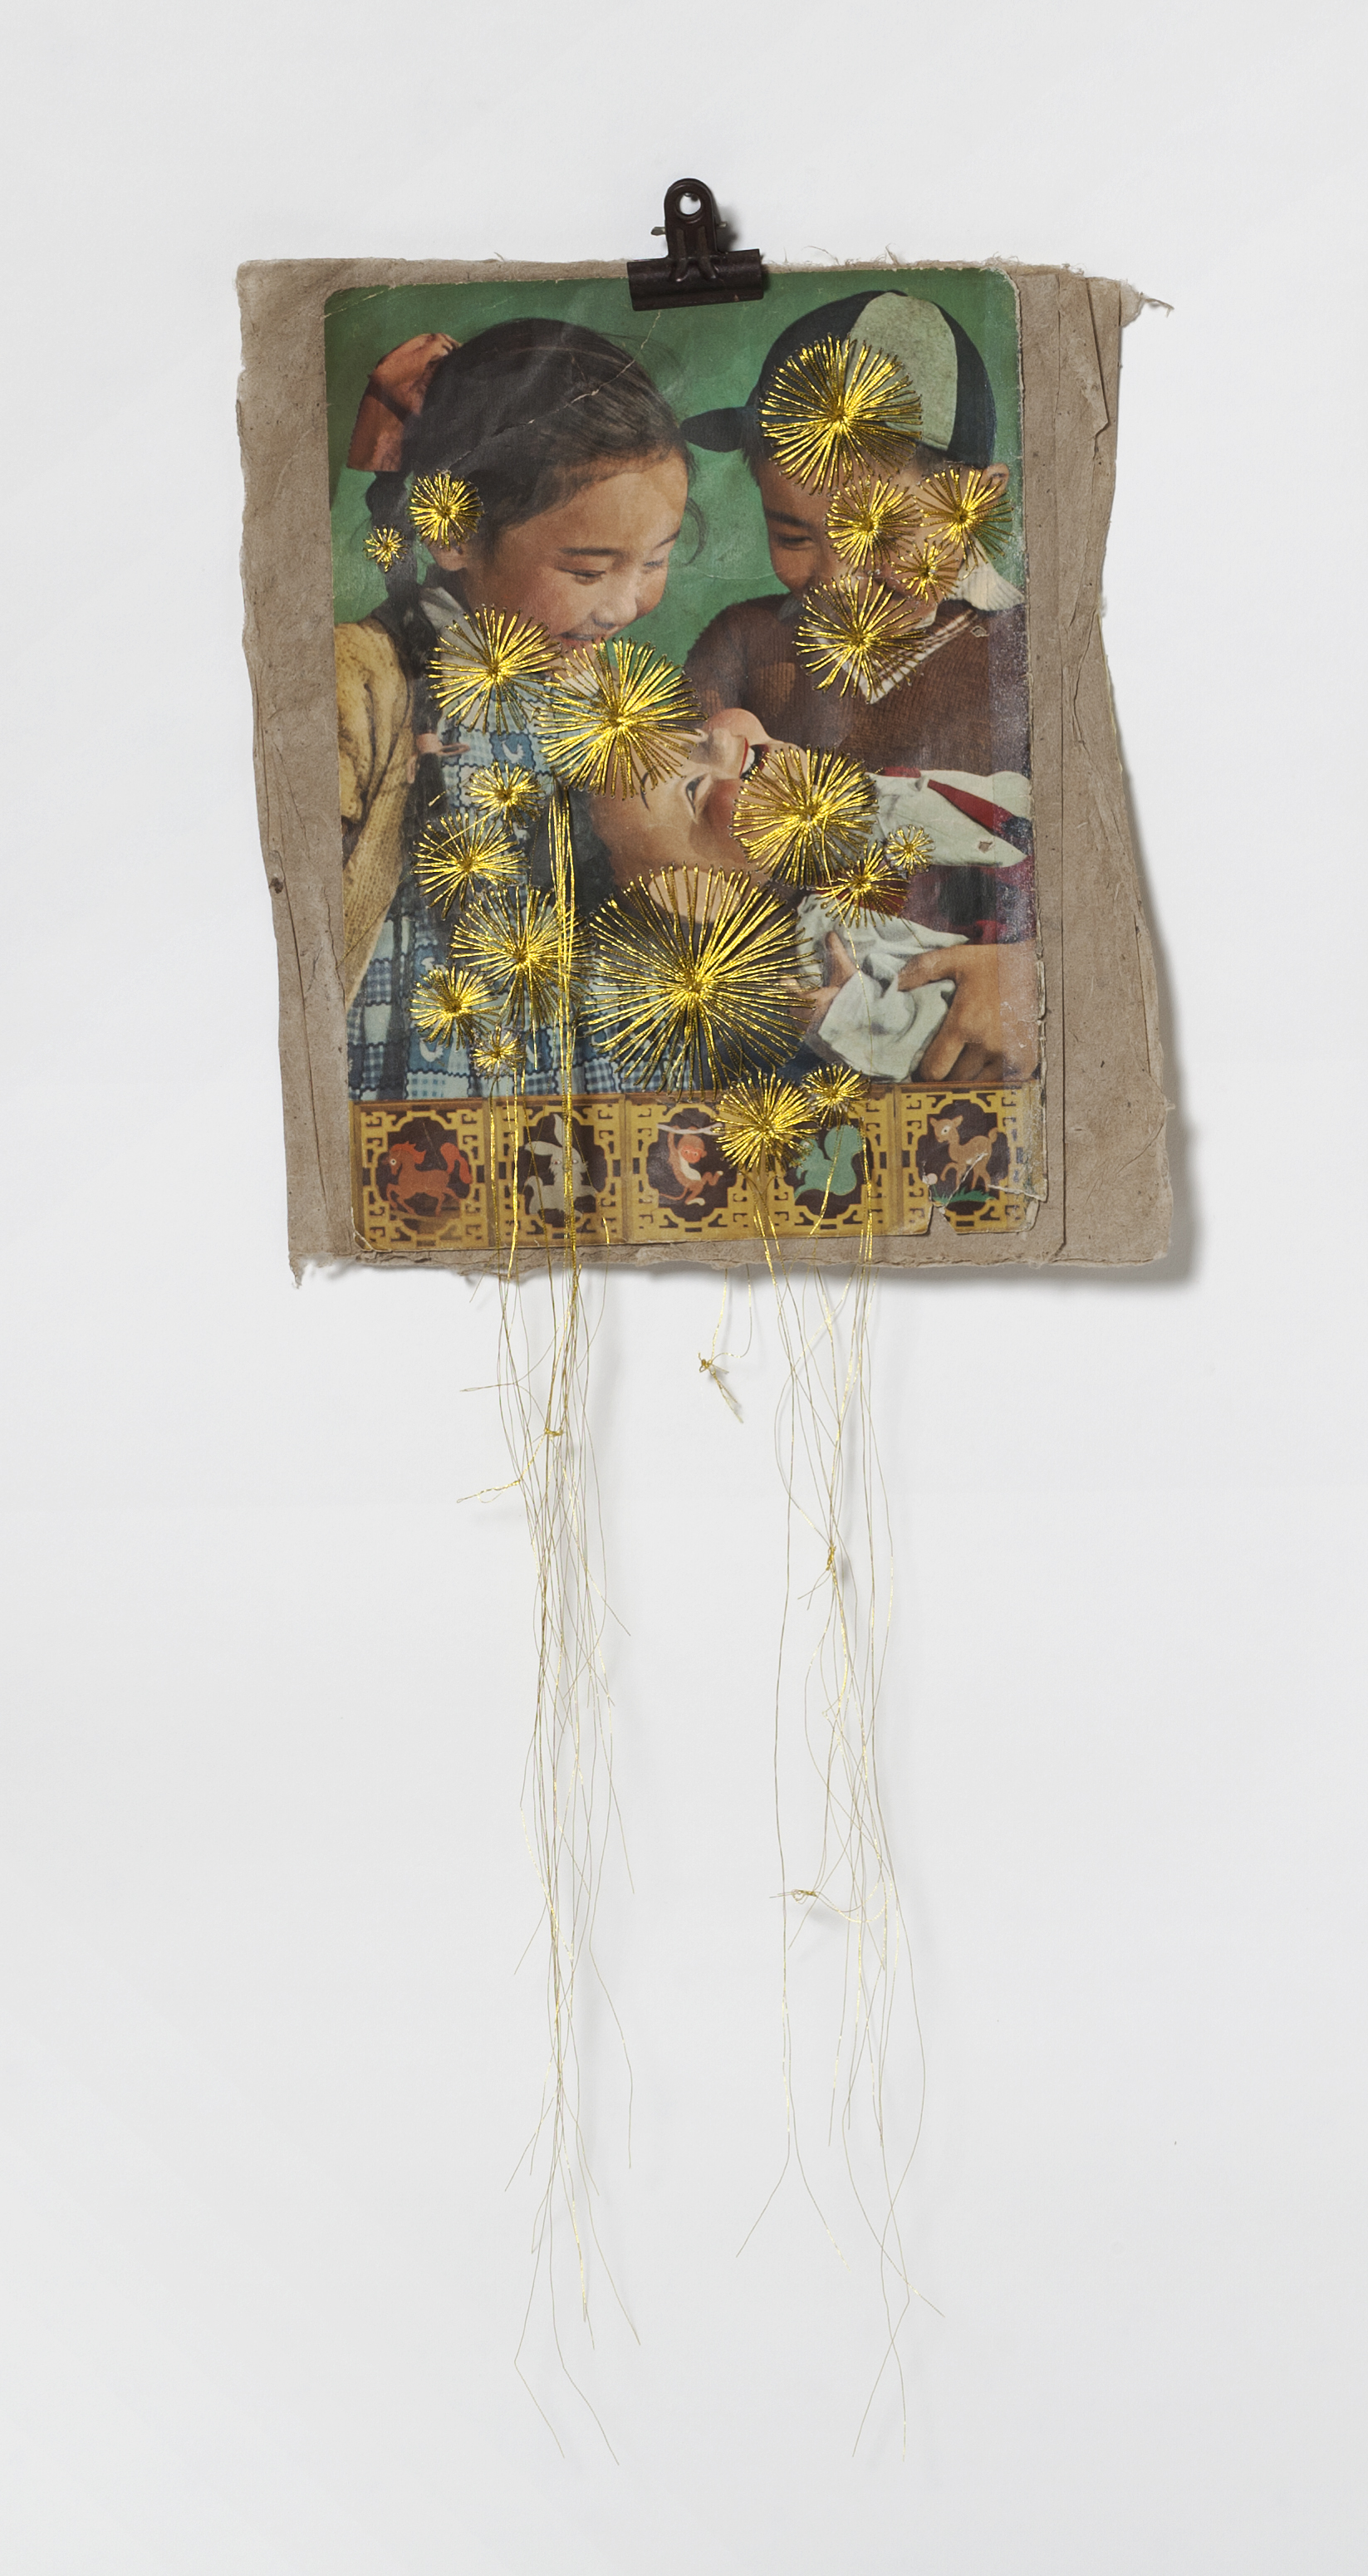 CHINA SAMPLERS I, II Found threads, 1960s Mao propaganda magazines, dimensions vary from 7x9 to 9x12 inches – 2014